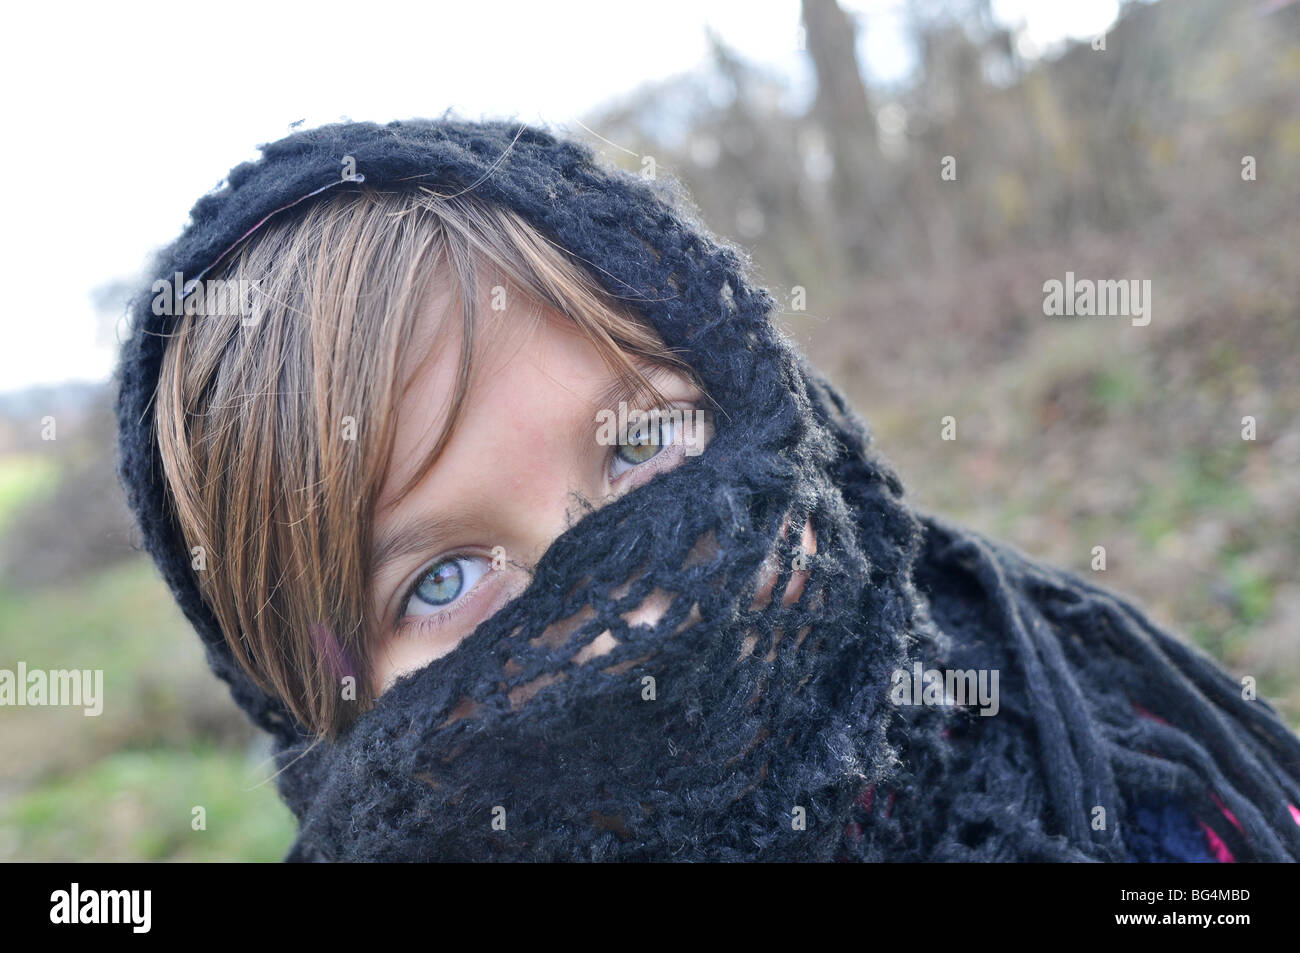 Girl with scarf on her face. - Stock Image